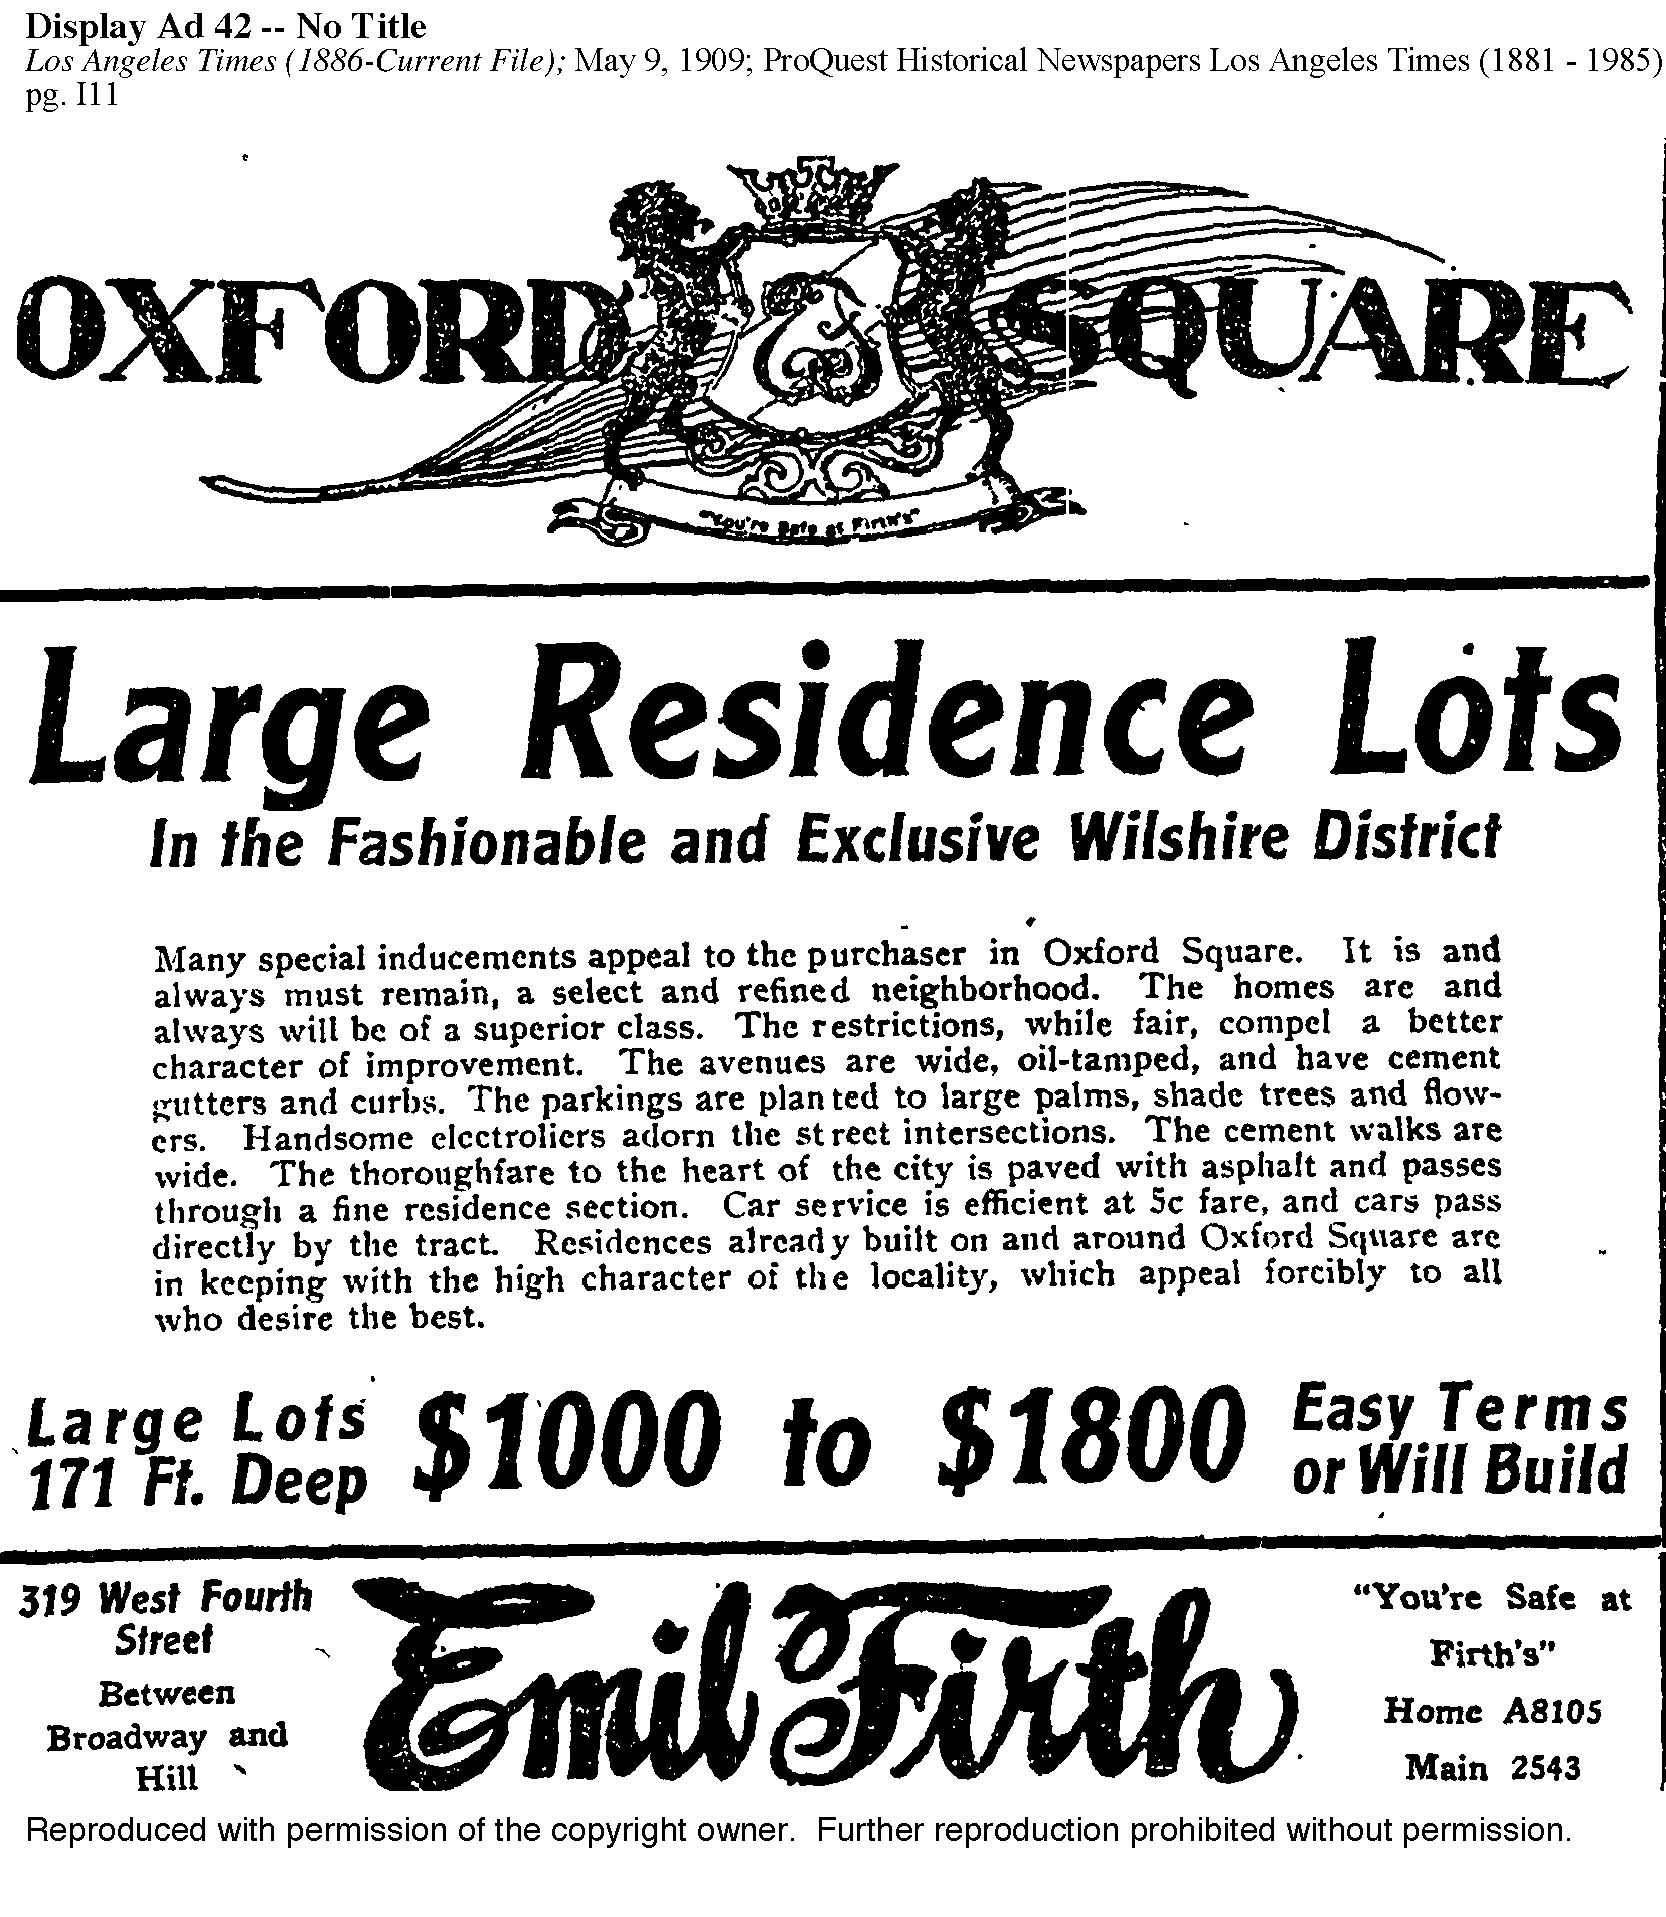 ADVERTISEMENT FOR OXFORD SQUARE, Los Angeles Times May 9, 1909.